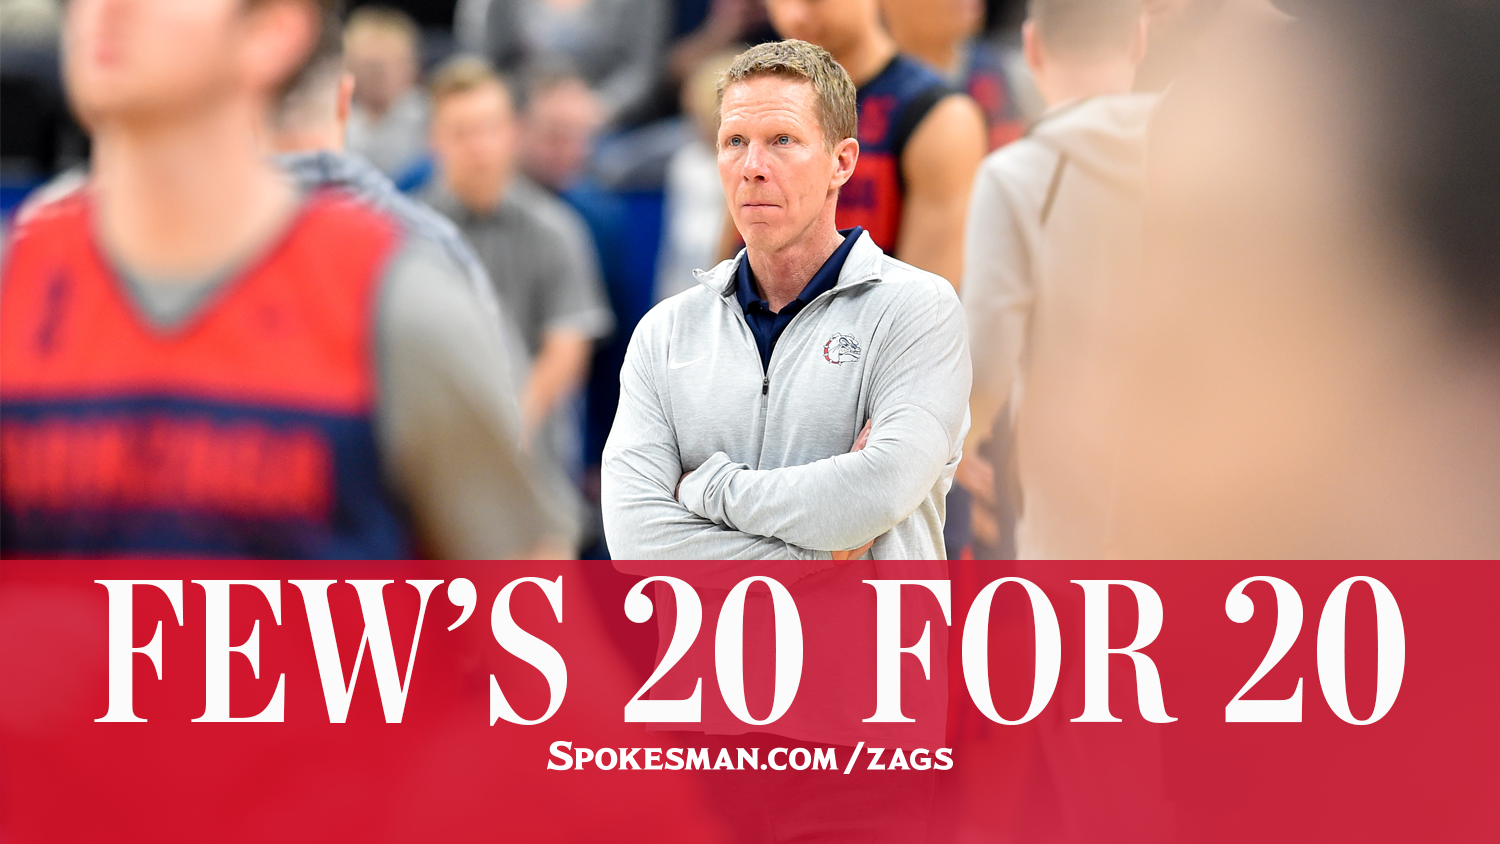 Mark Few S 20 Top Memories From 20 Years Of Gonzaga As National Images, Photos, Reviews